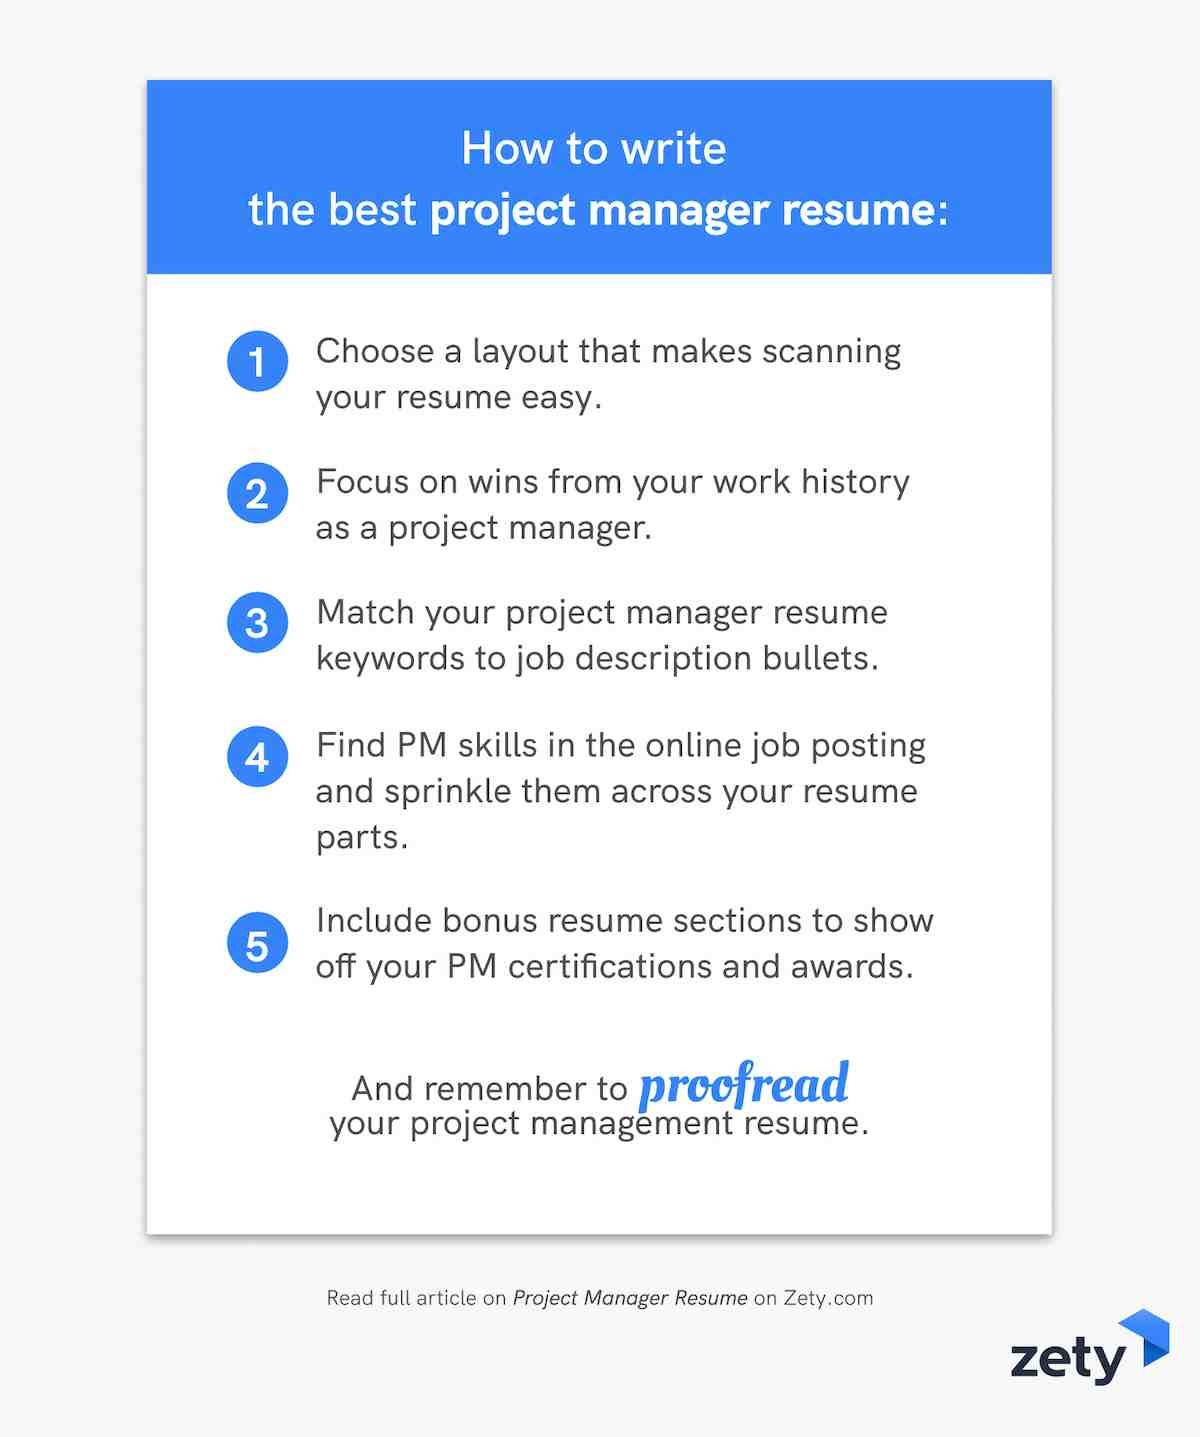 How to write the best project manager resume